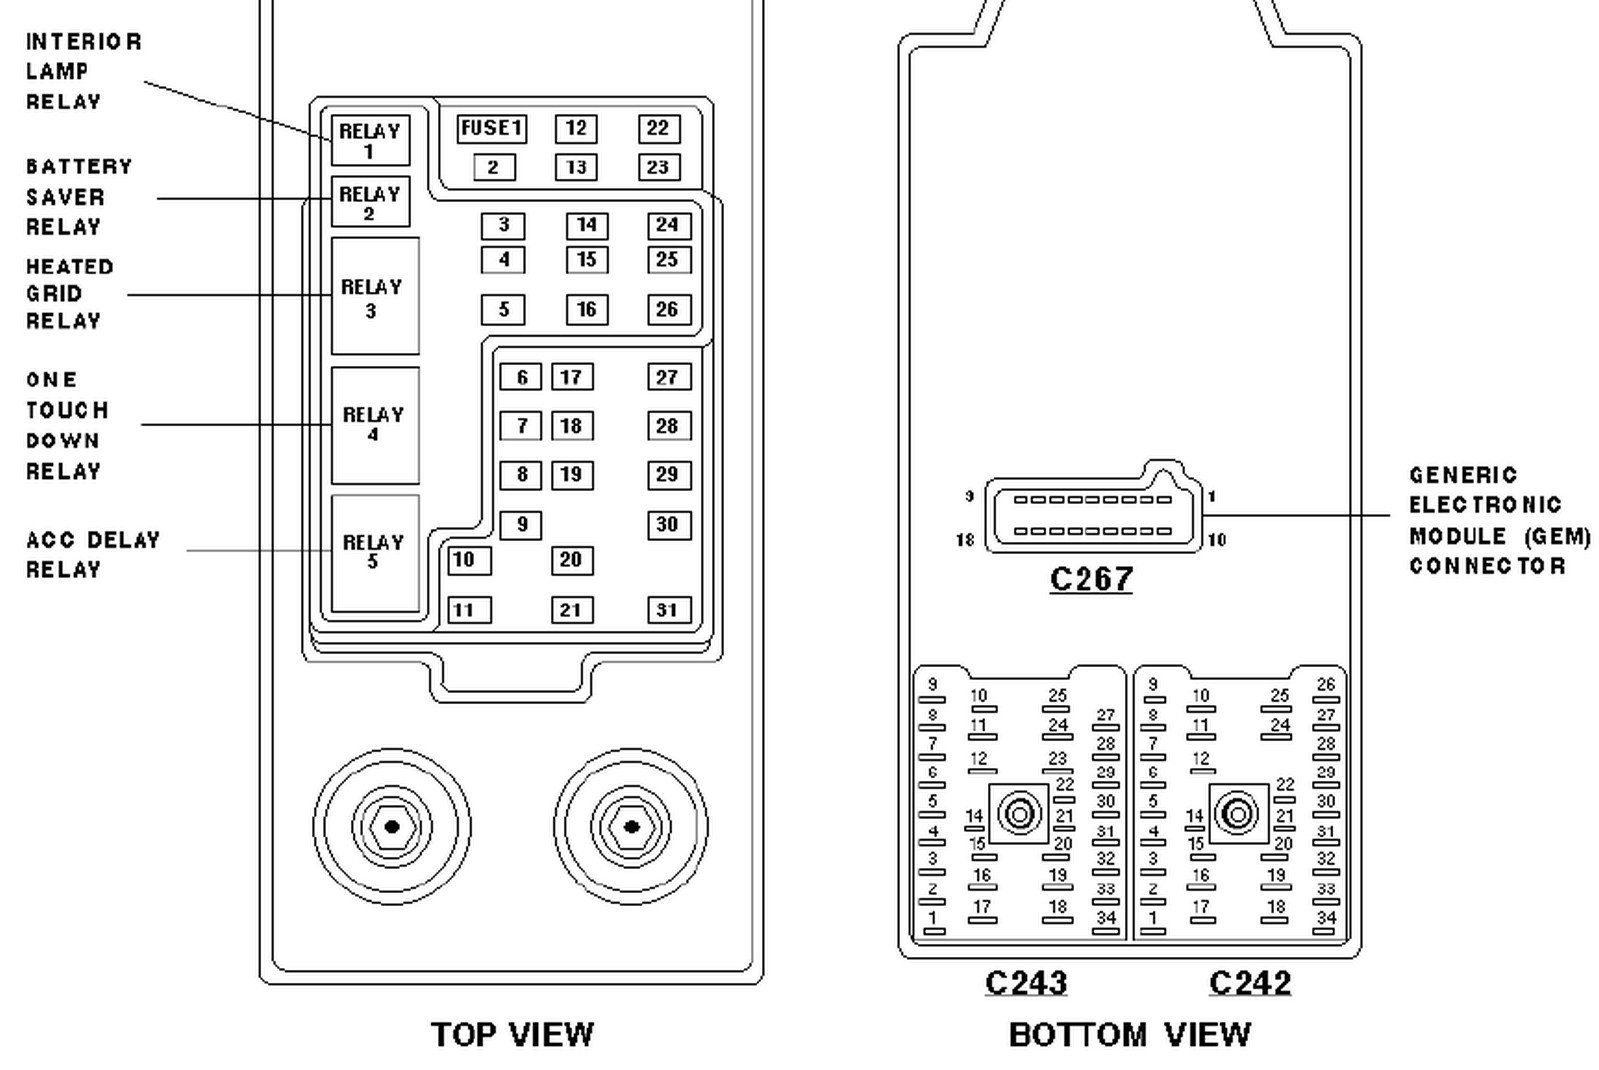 Marvelous 97 Ford Expedition Fuse Box Diagram Wiring Diagram Wiring Cloud Monangrecoveryedborg